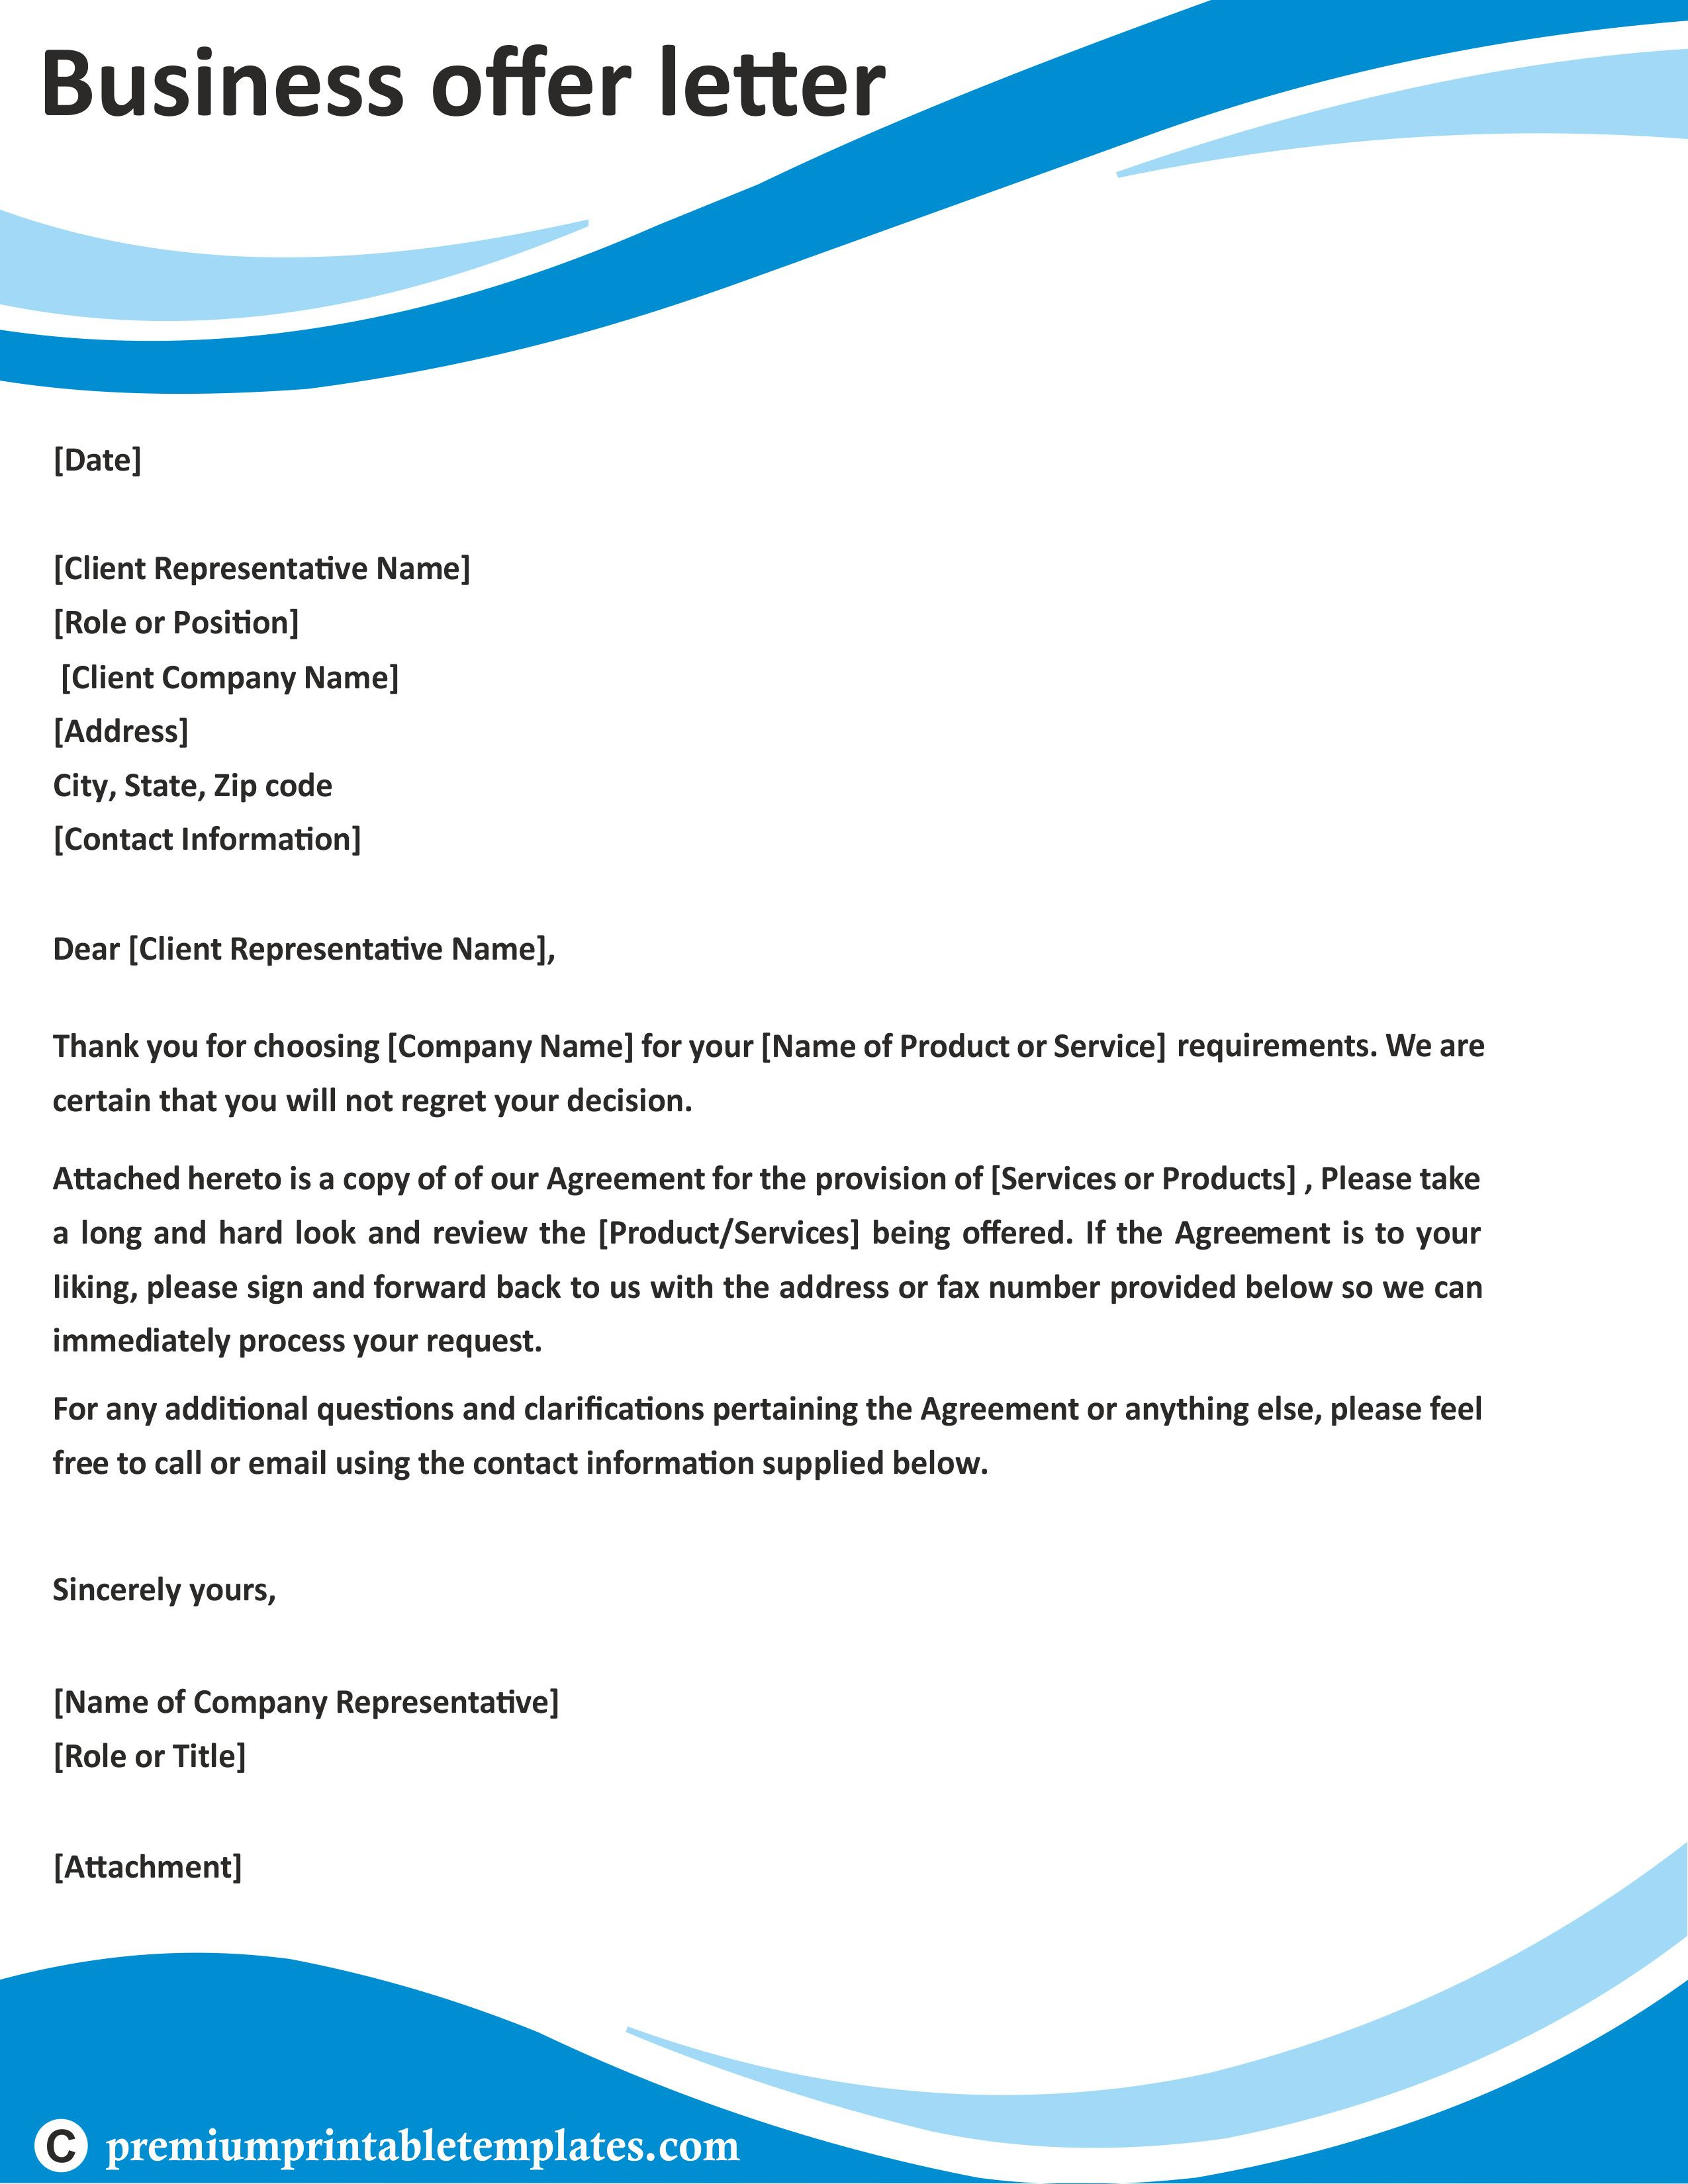 12 Creative Business Offer Business Letter Template Business Letter Format Proposal Letter Sample business letters to customers